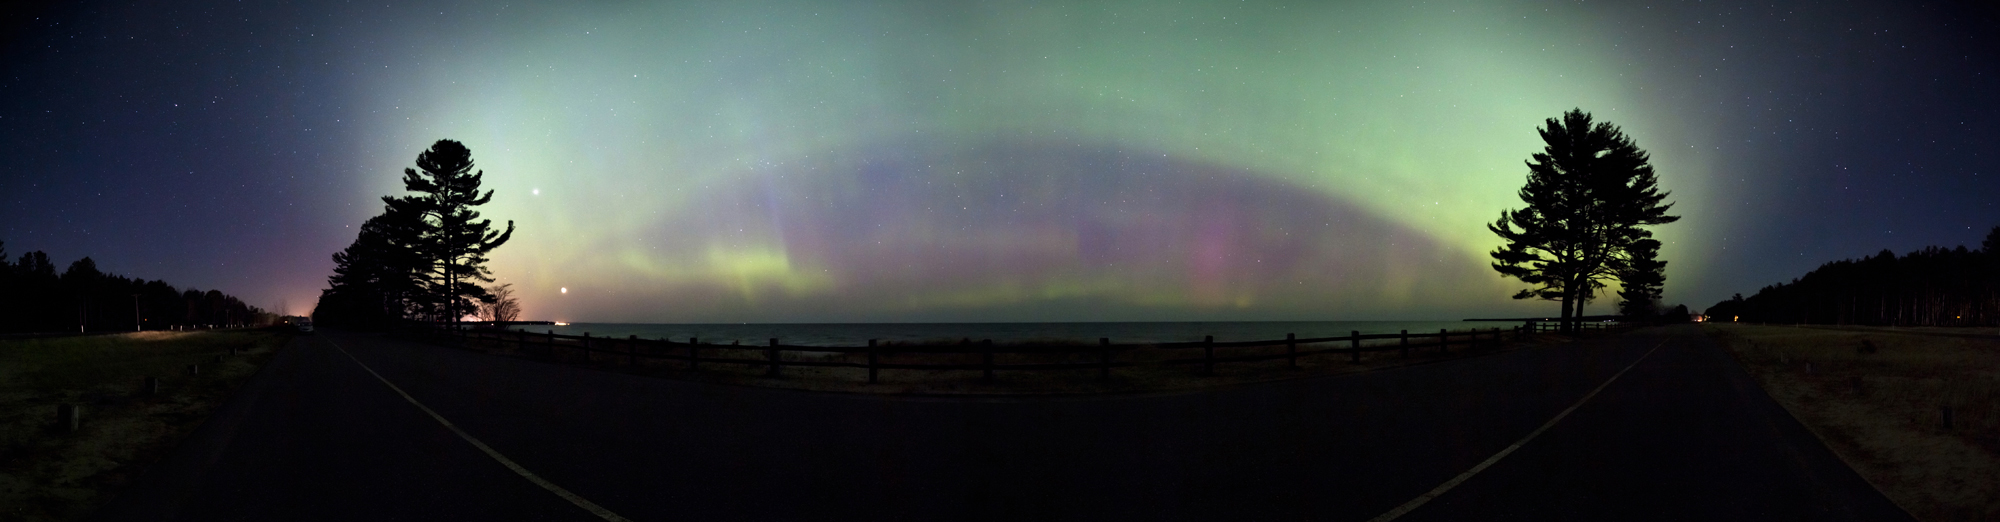 April 2012 Aurora over Lake Superior #6